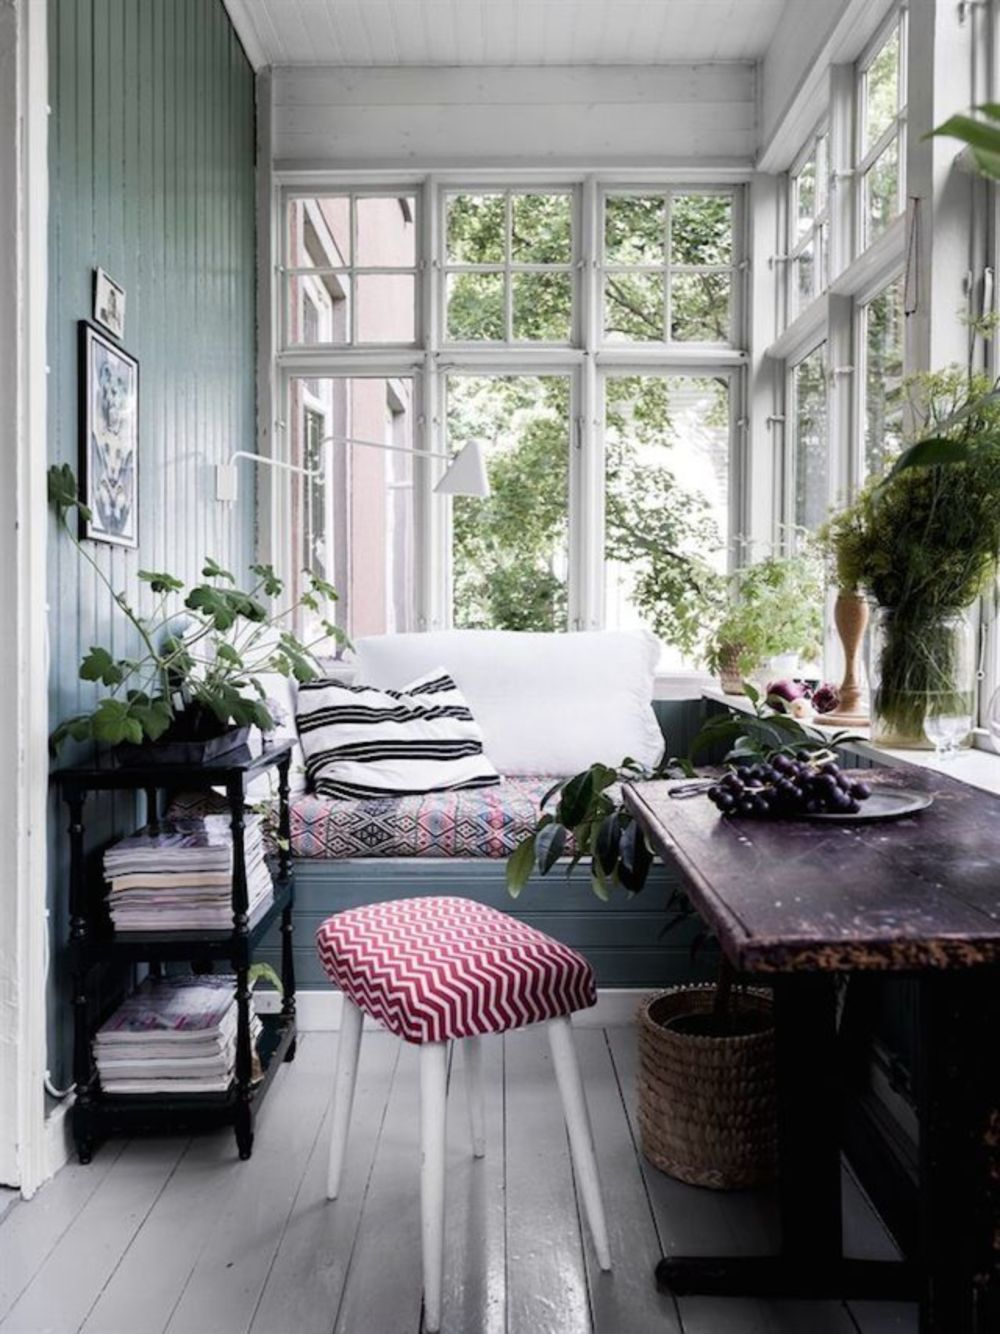 39 Insanely Cool Swedish Style Apartment